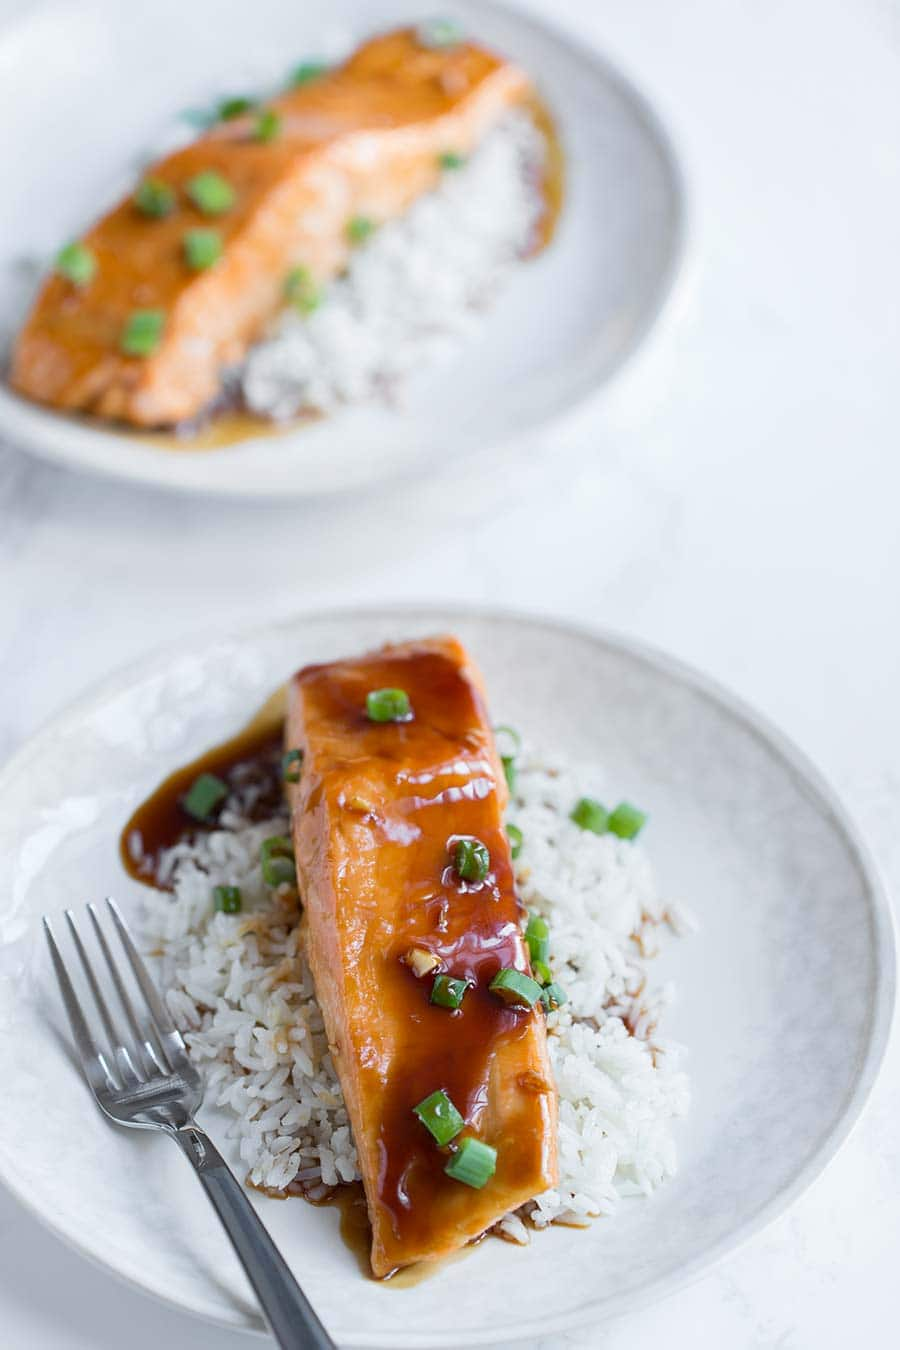 2 pieces of teriyaki salmon served over rice, topped with scallions.